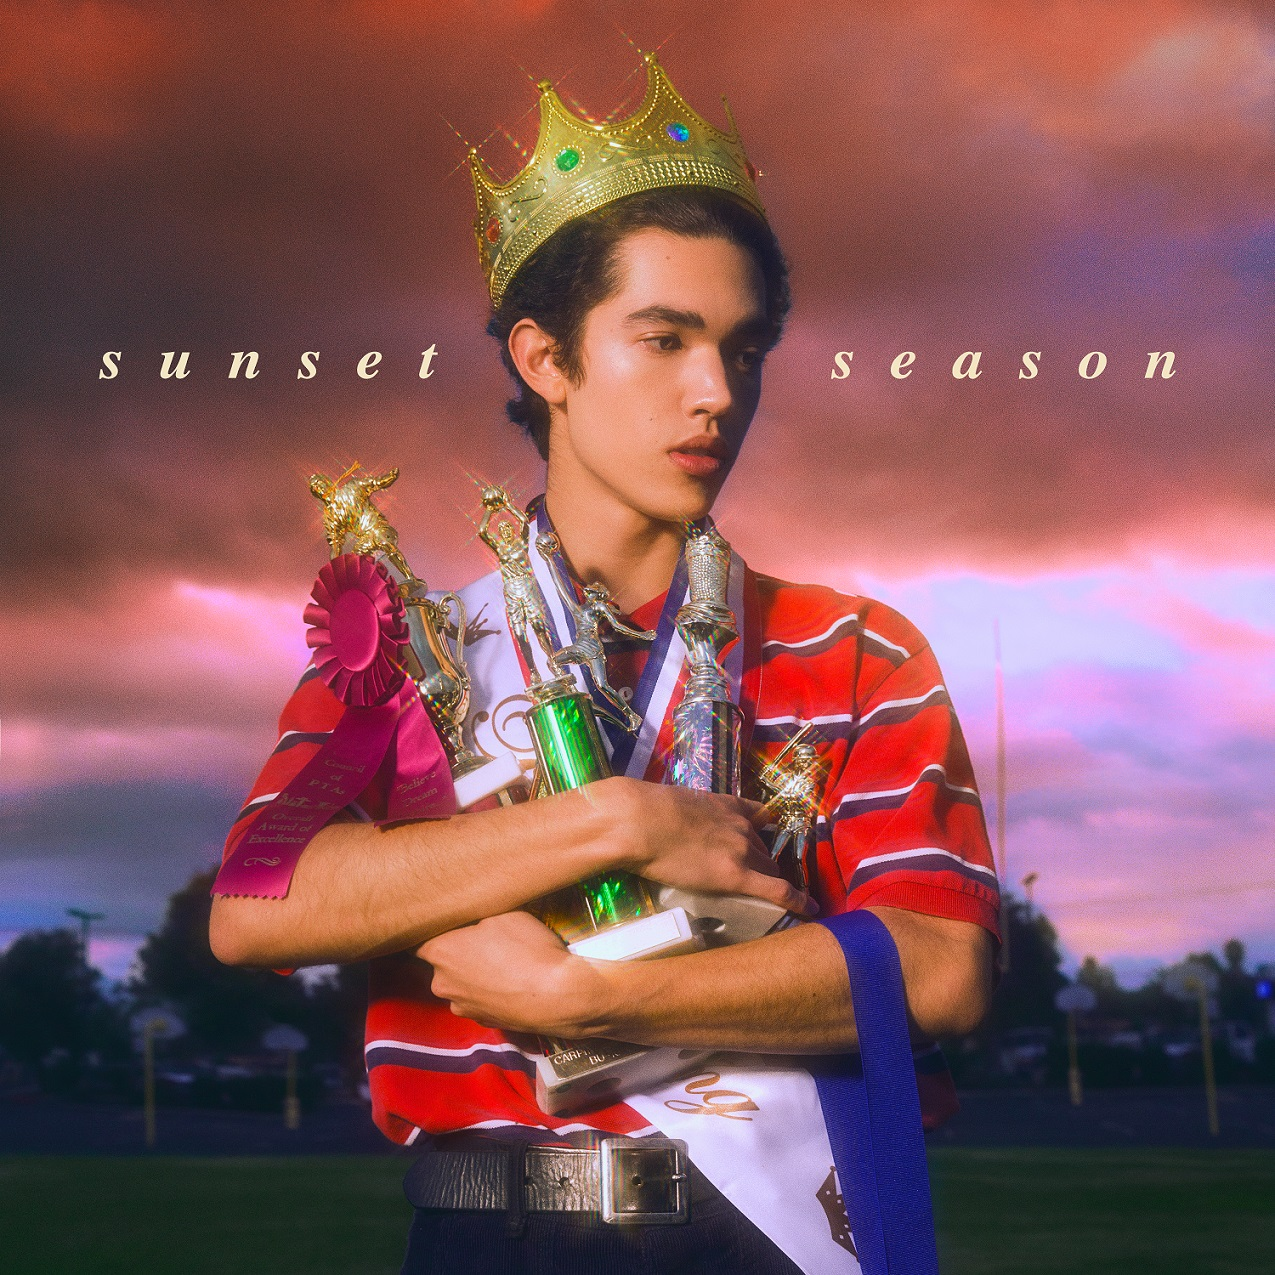 Sunset Season EP - Conan Gray